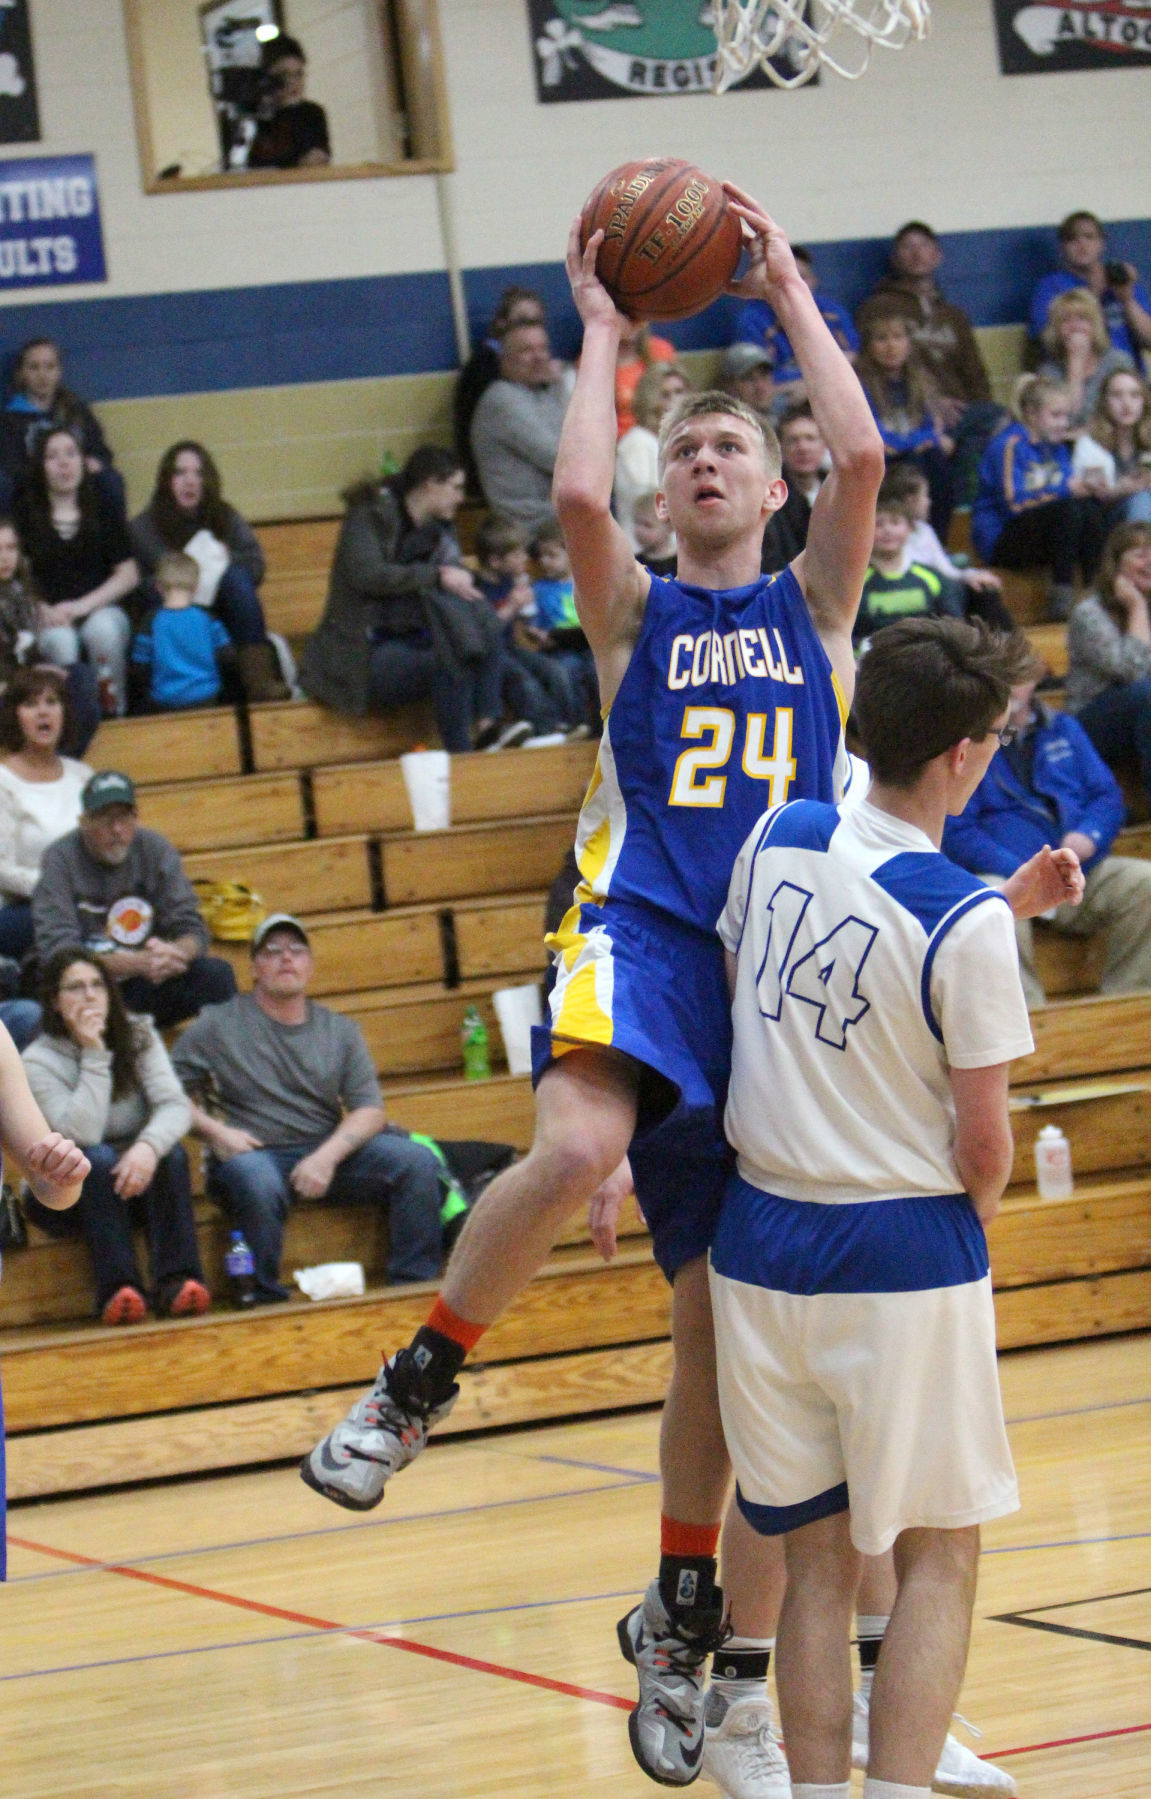 Cornell at McDonell boys basketball 2-27-18